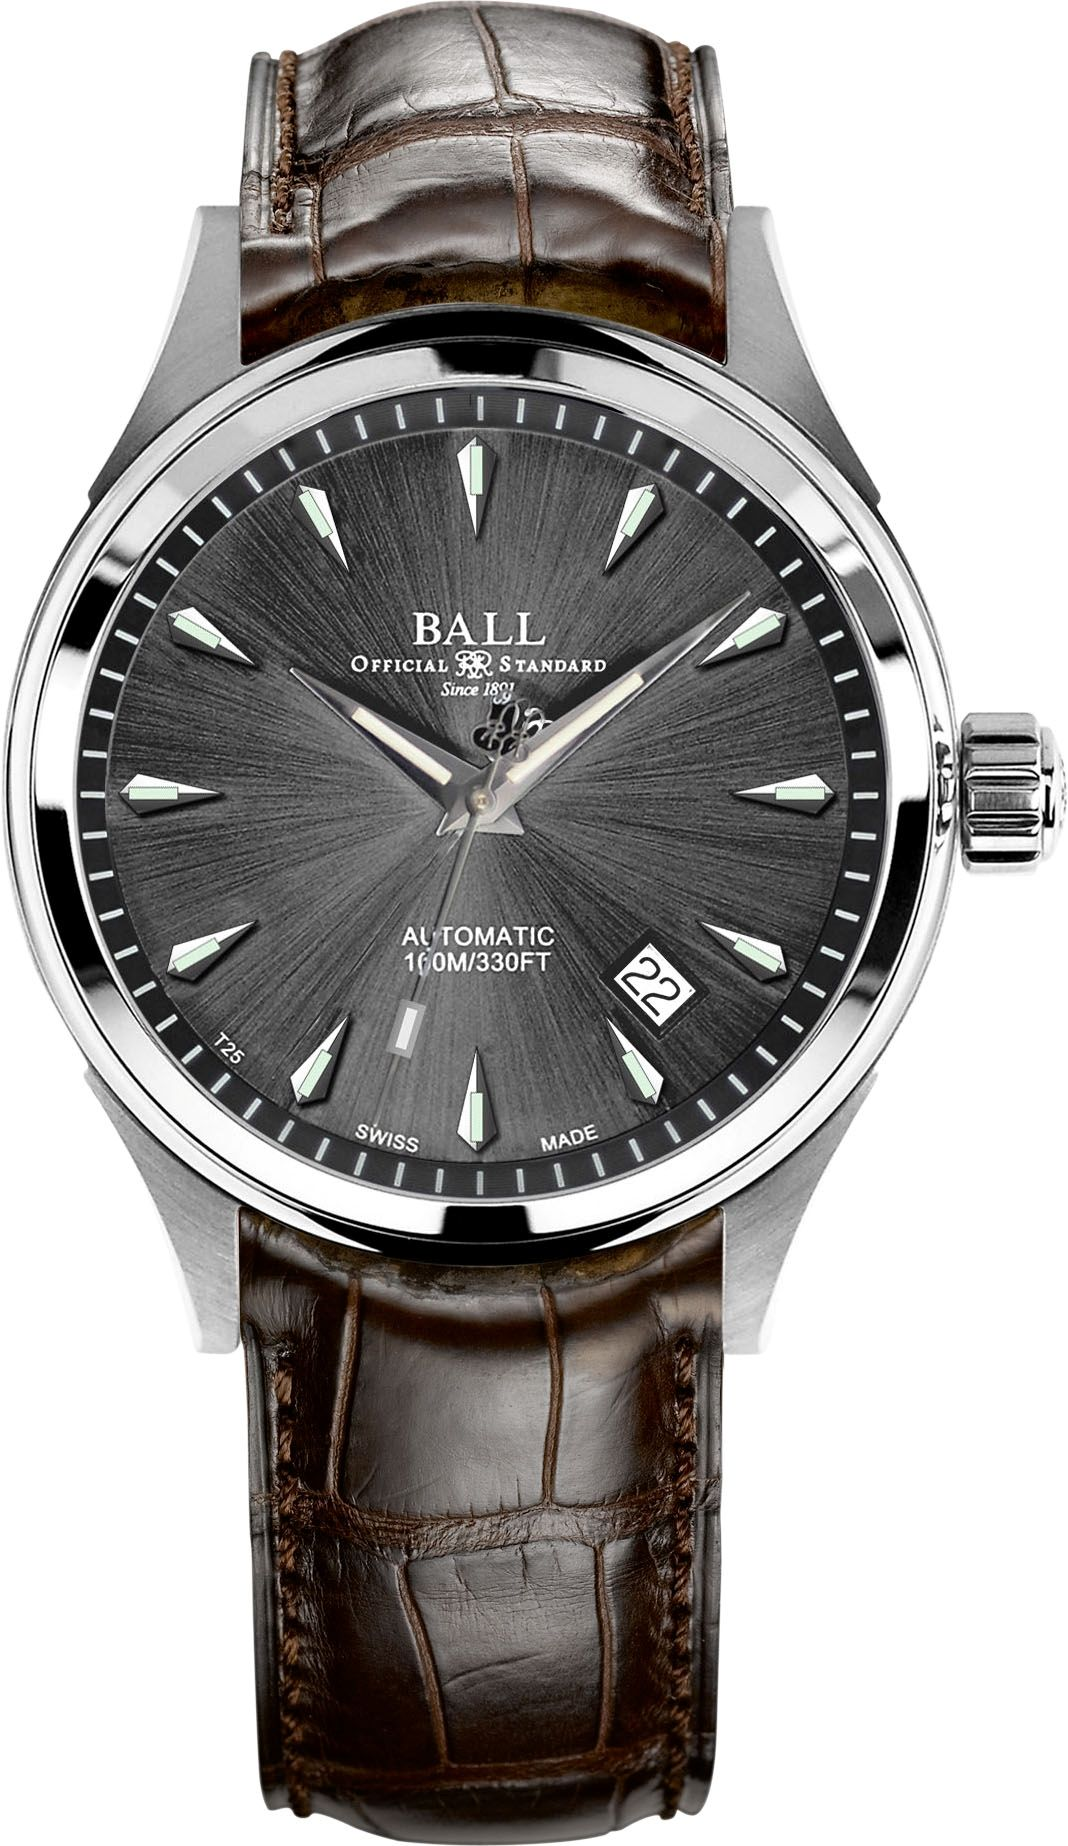 watch official ball standard pulli company time cleveland watches trainmaster ohio webb martin